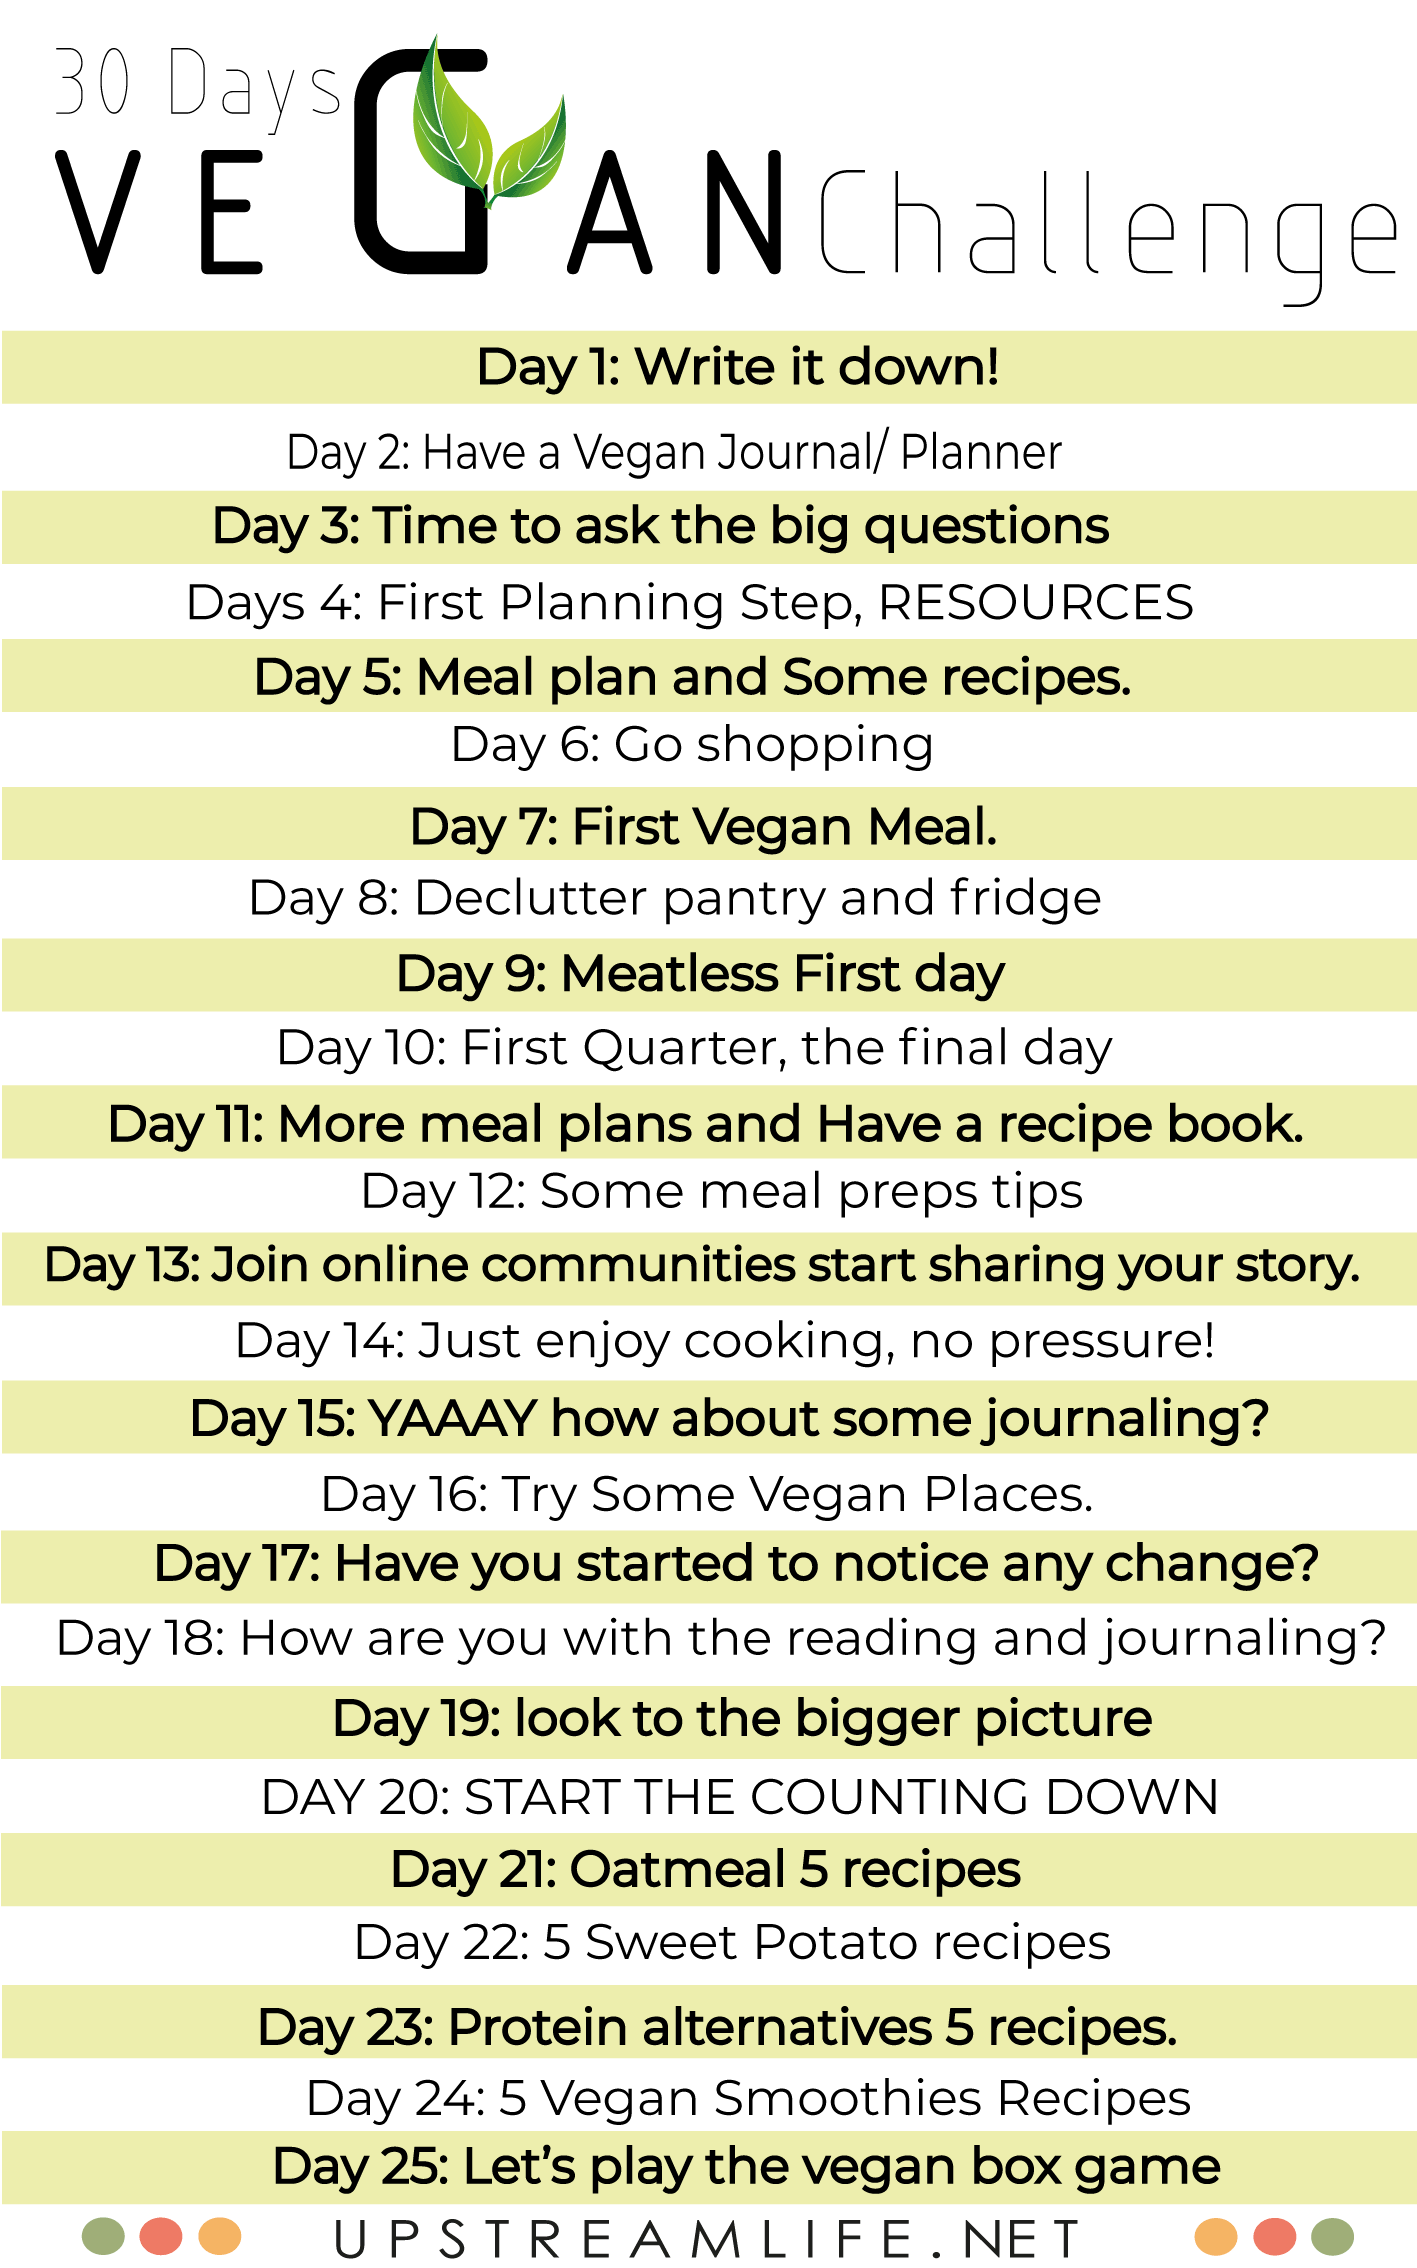 Try to be a vegan for a month, and as the international vegan day is coming, so it is time to take this opportunity to try some vegan recipes :)   #veganday #veganchallenge #veganlife #365day #monthlychallenges #USLchallenges #